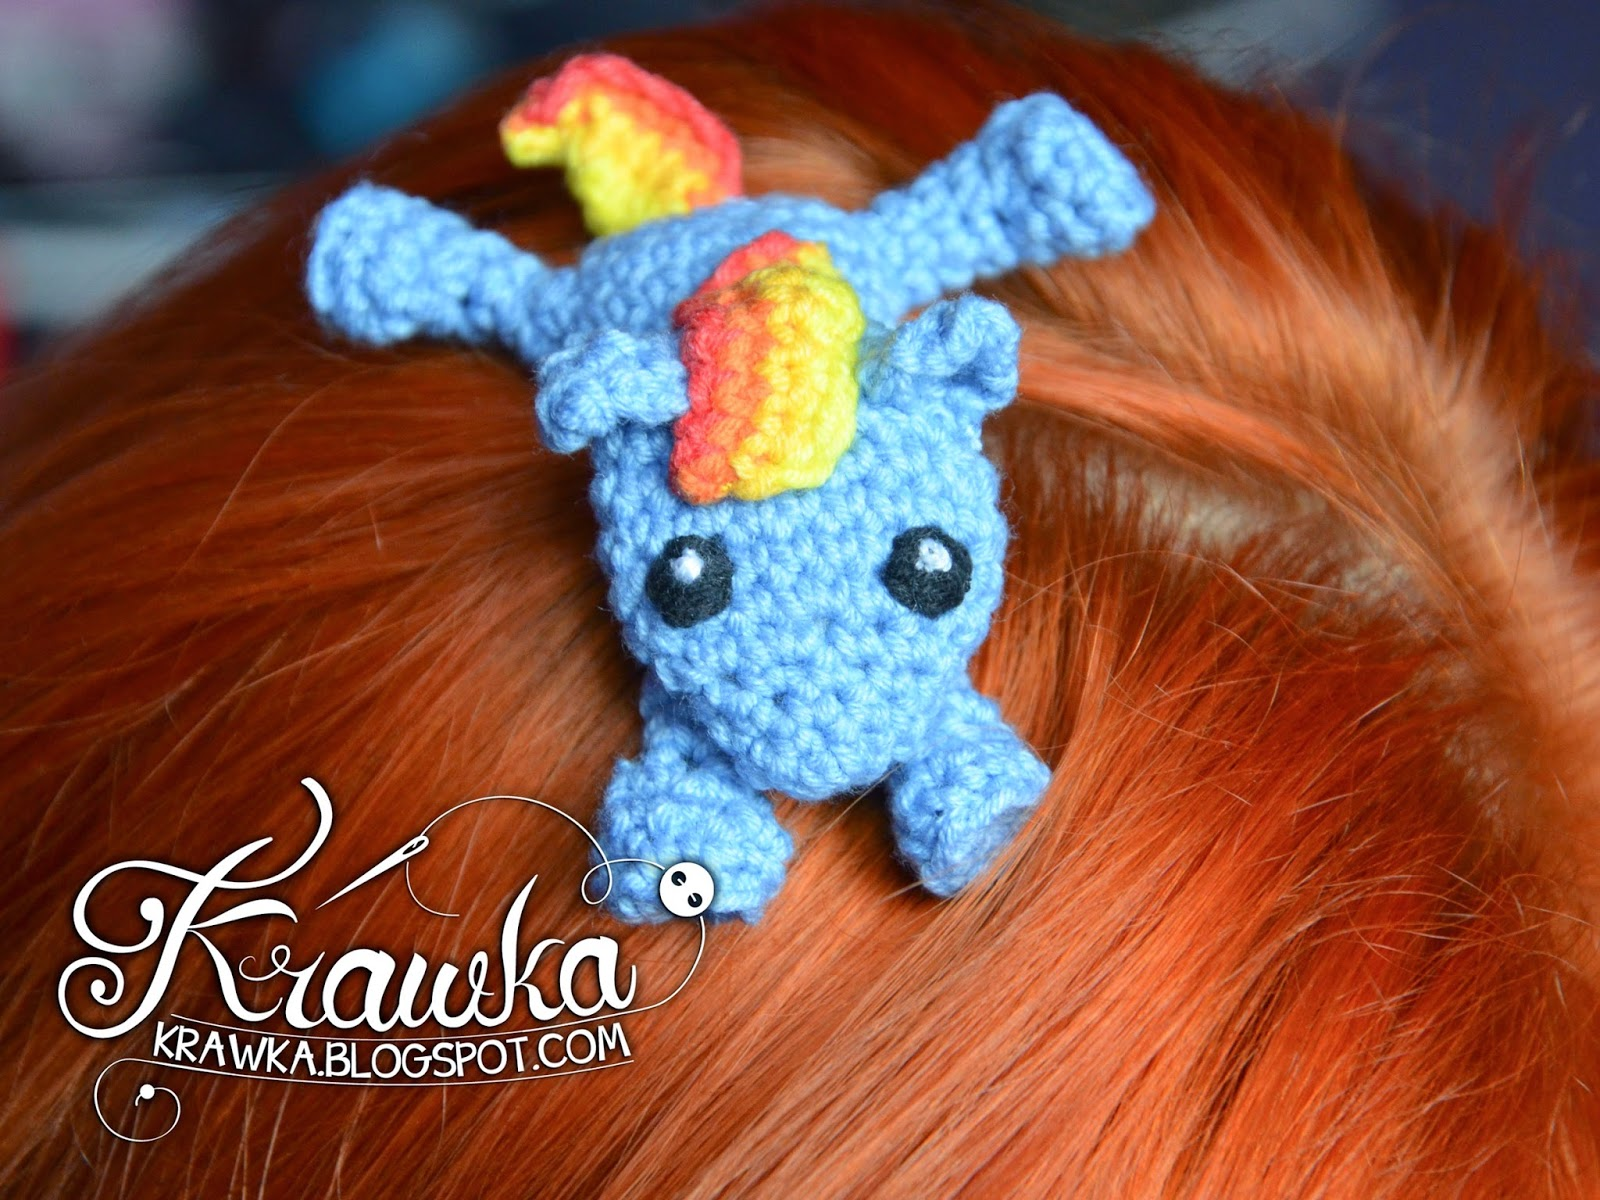 Krawka: Crochet hair clip - My little Pony - Rainbow Dash - free pattern to make it Yourself